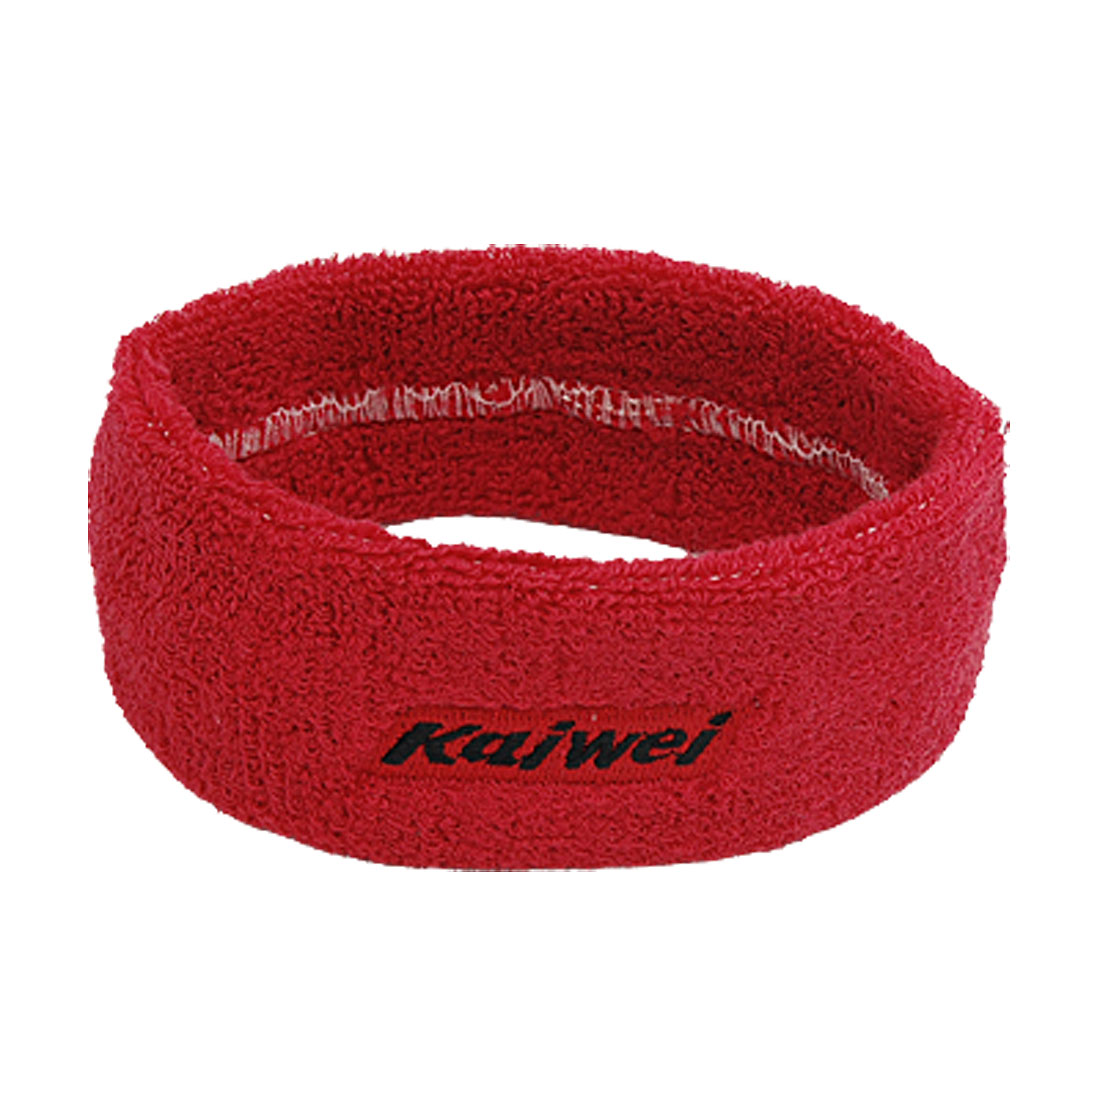 Red Sports Athletic Elastic Sweatband Head Band Headband